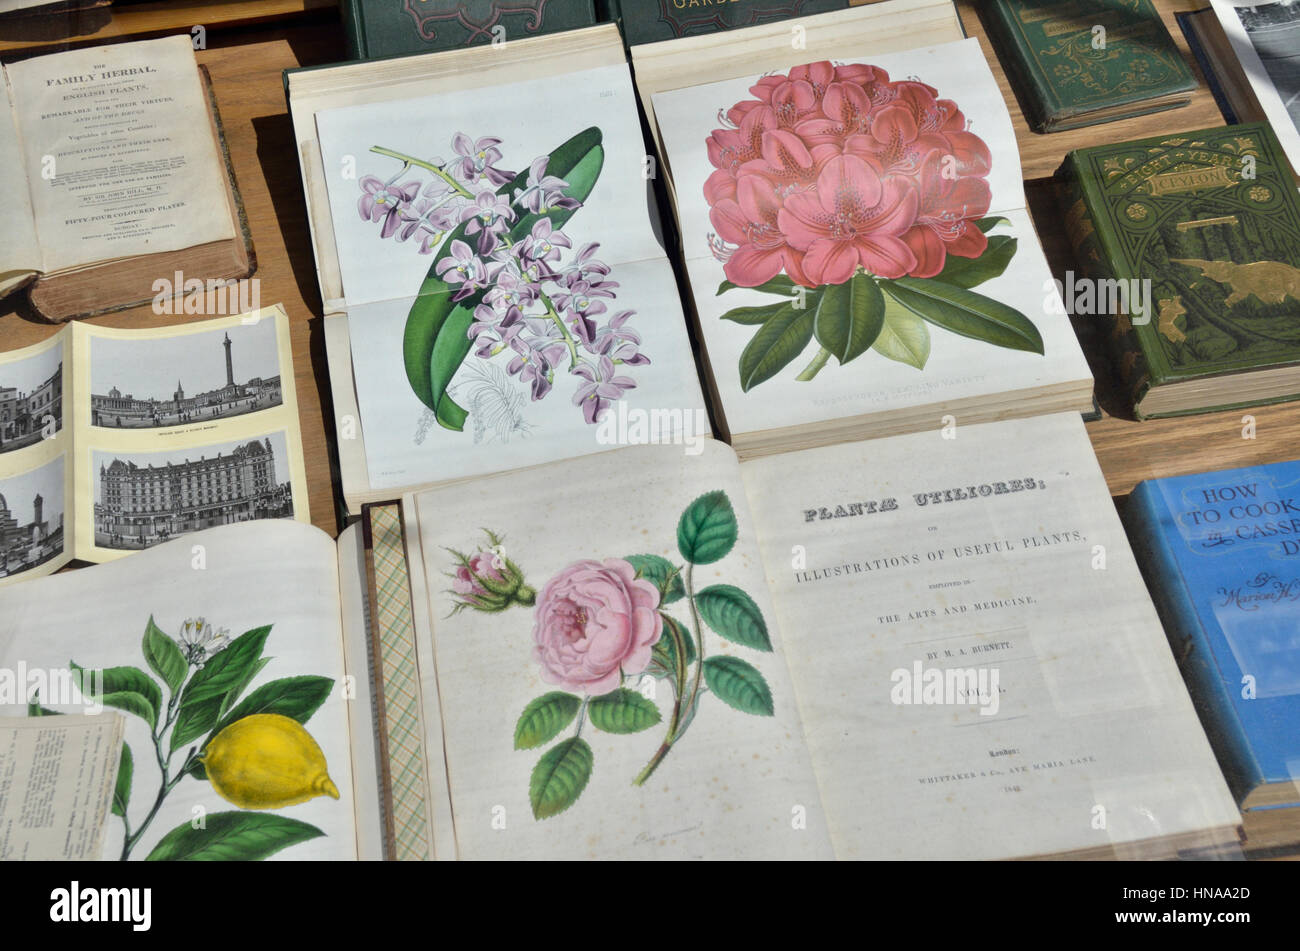 Antiquarian books about plants - Stock Image